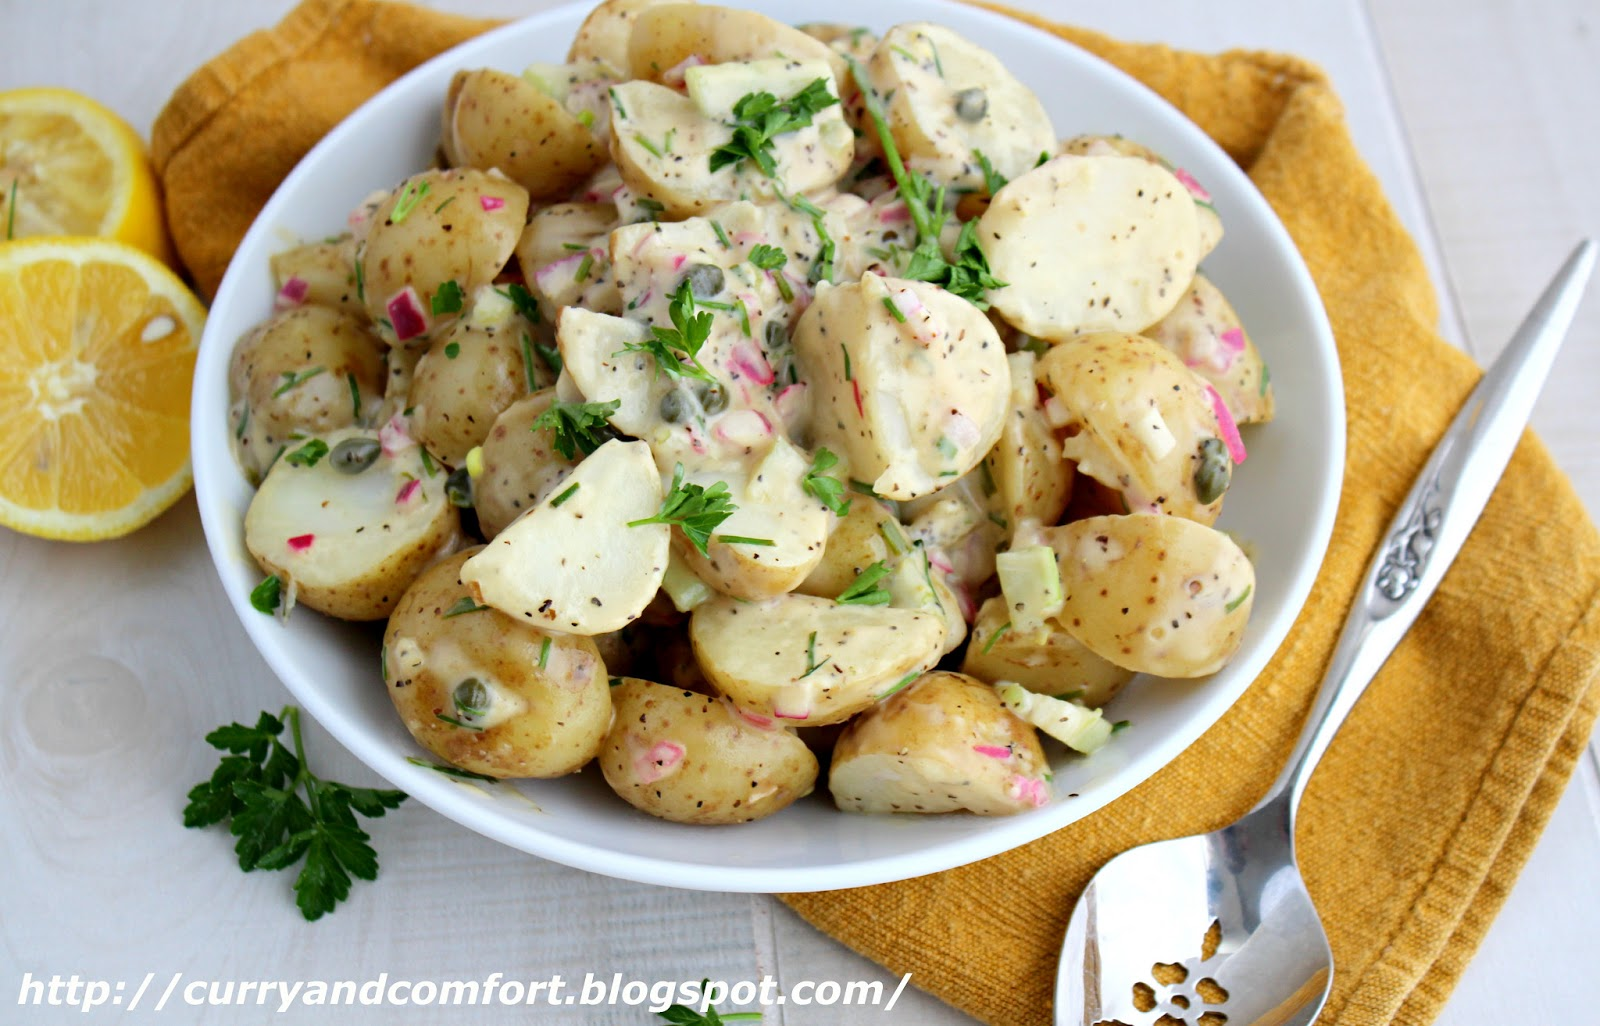 Kitchen Simmer: Lemon and Chive Warm Potato Salad